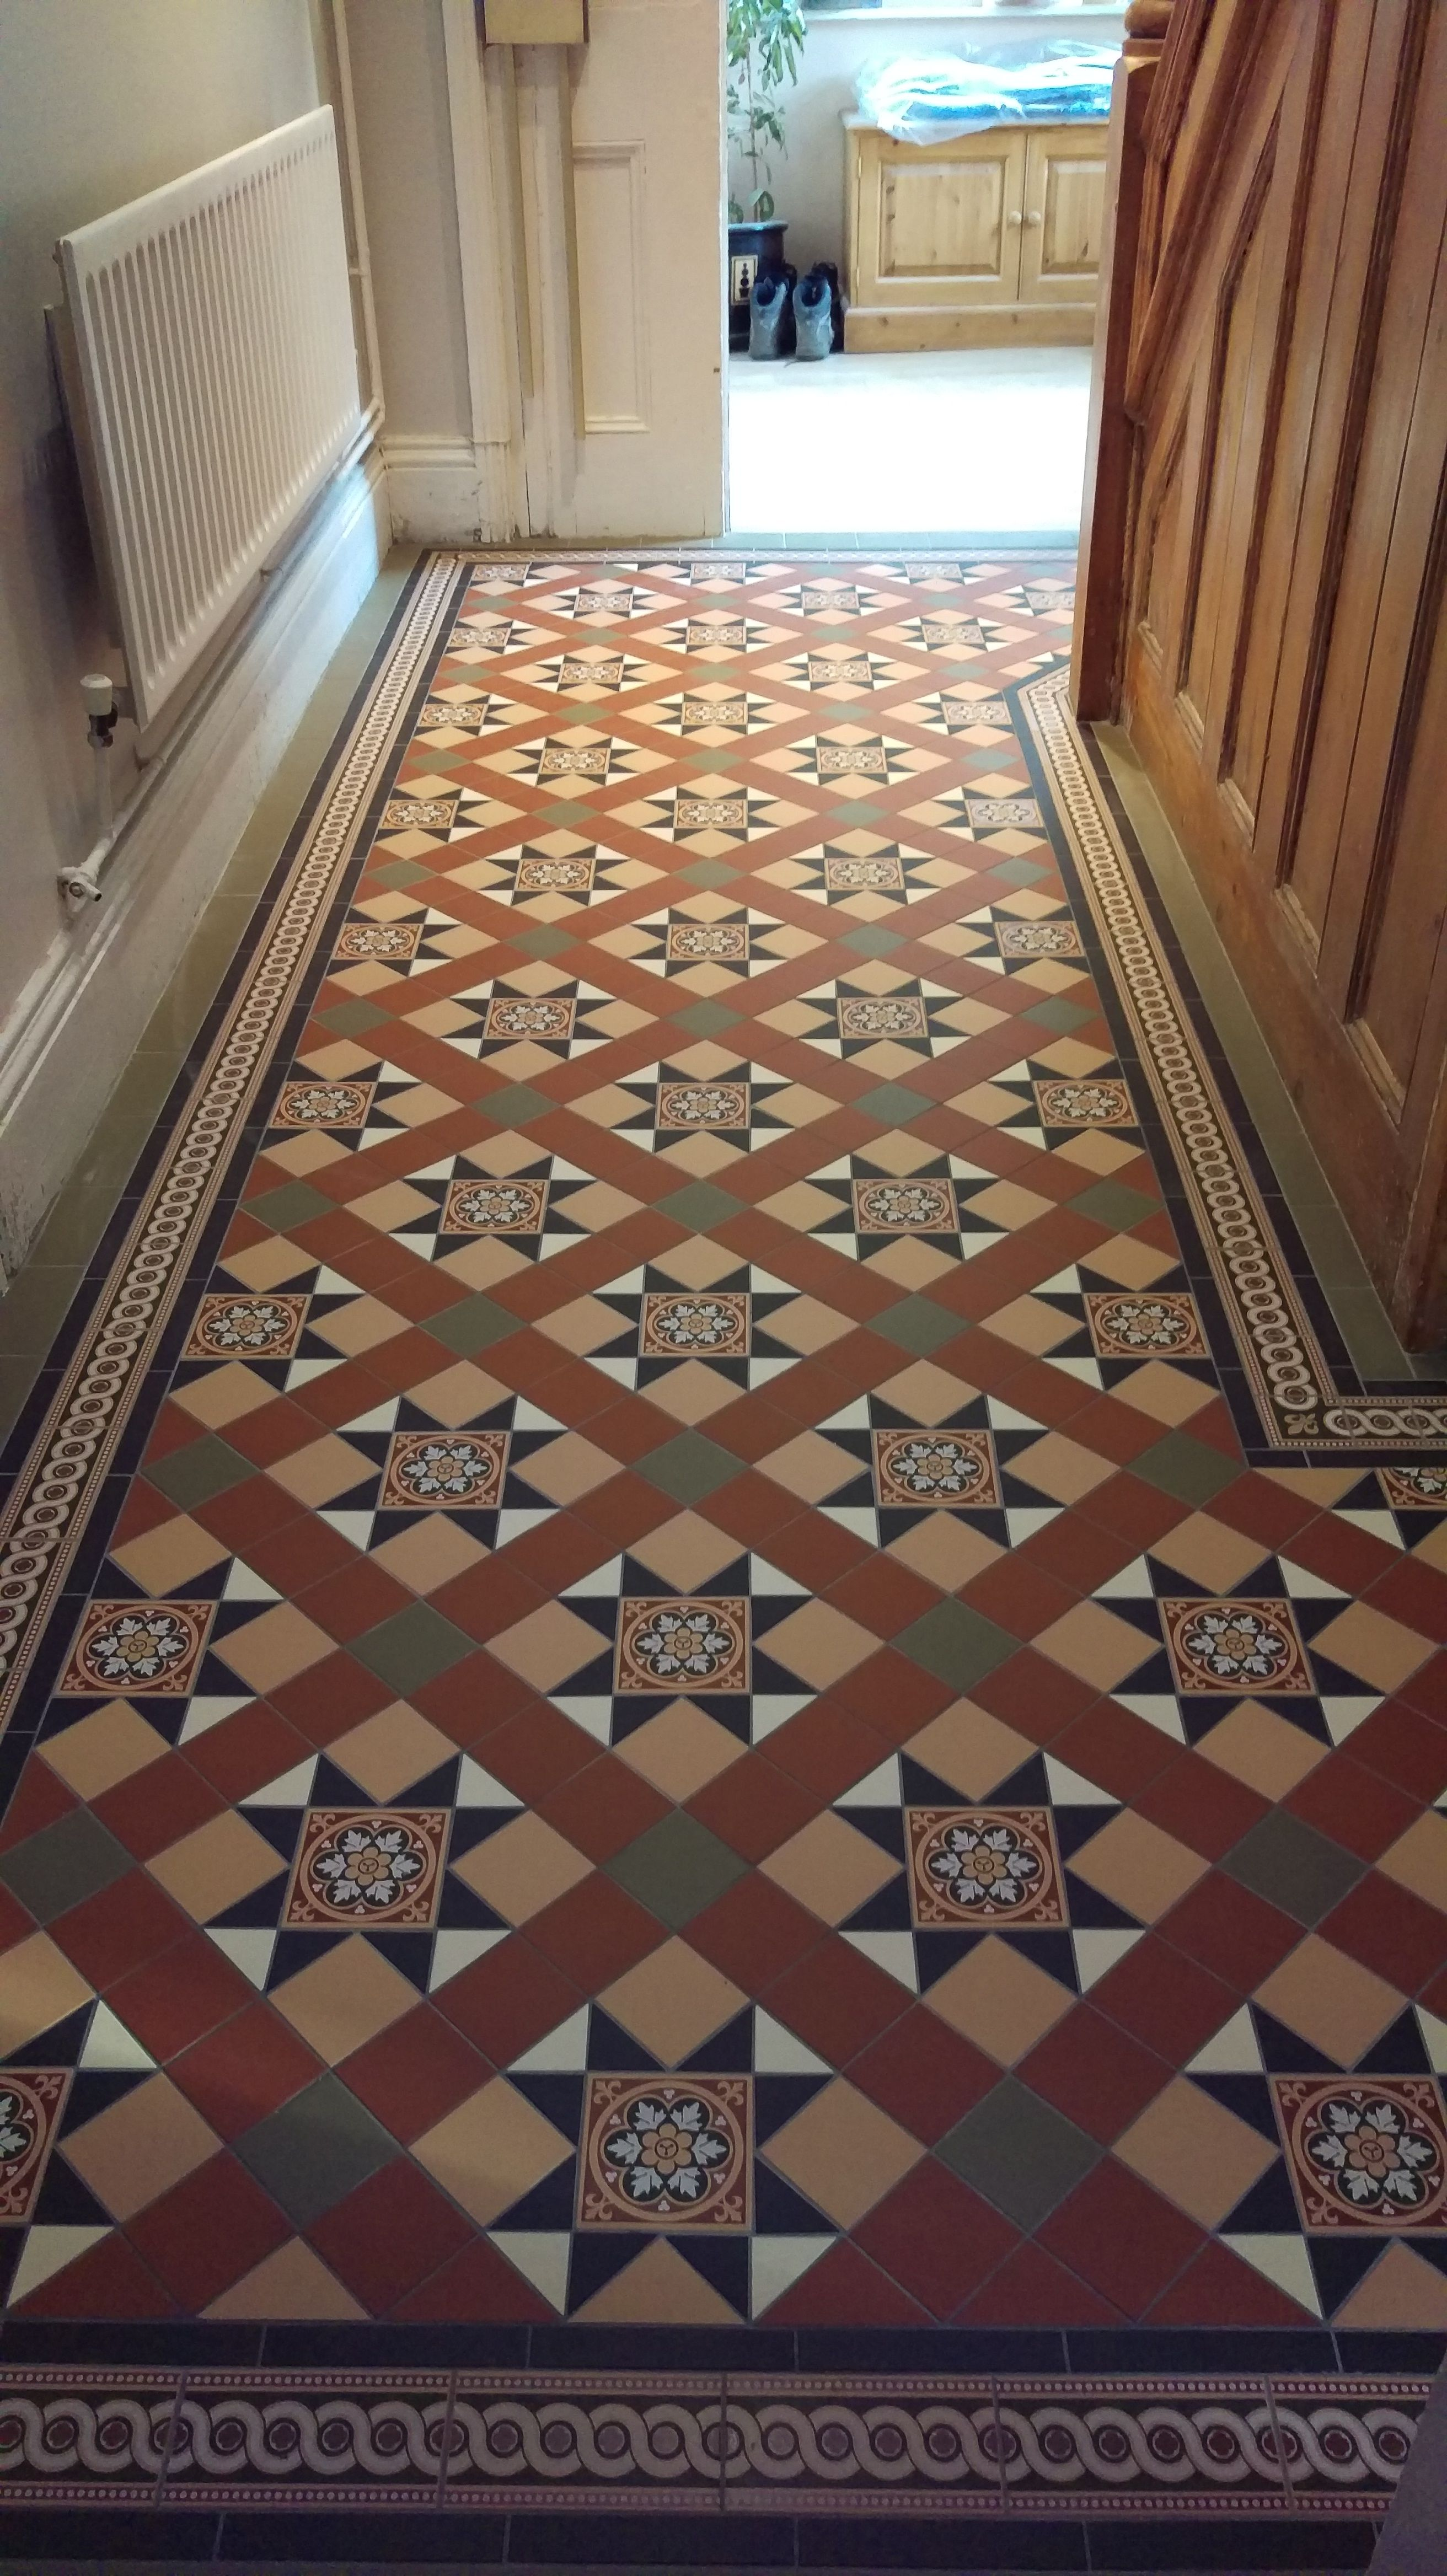 Alternative Tiles Specialist In Victorian Minton And Period Wall